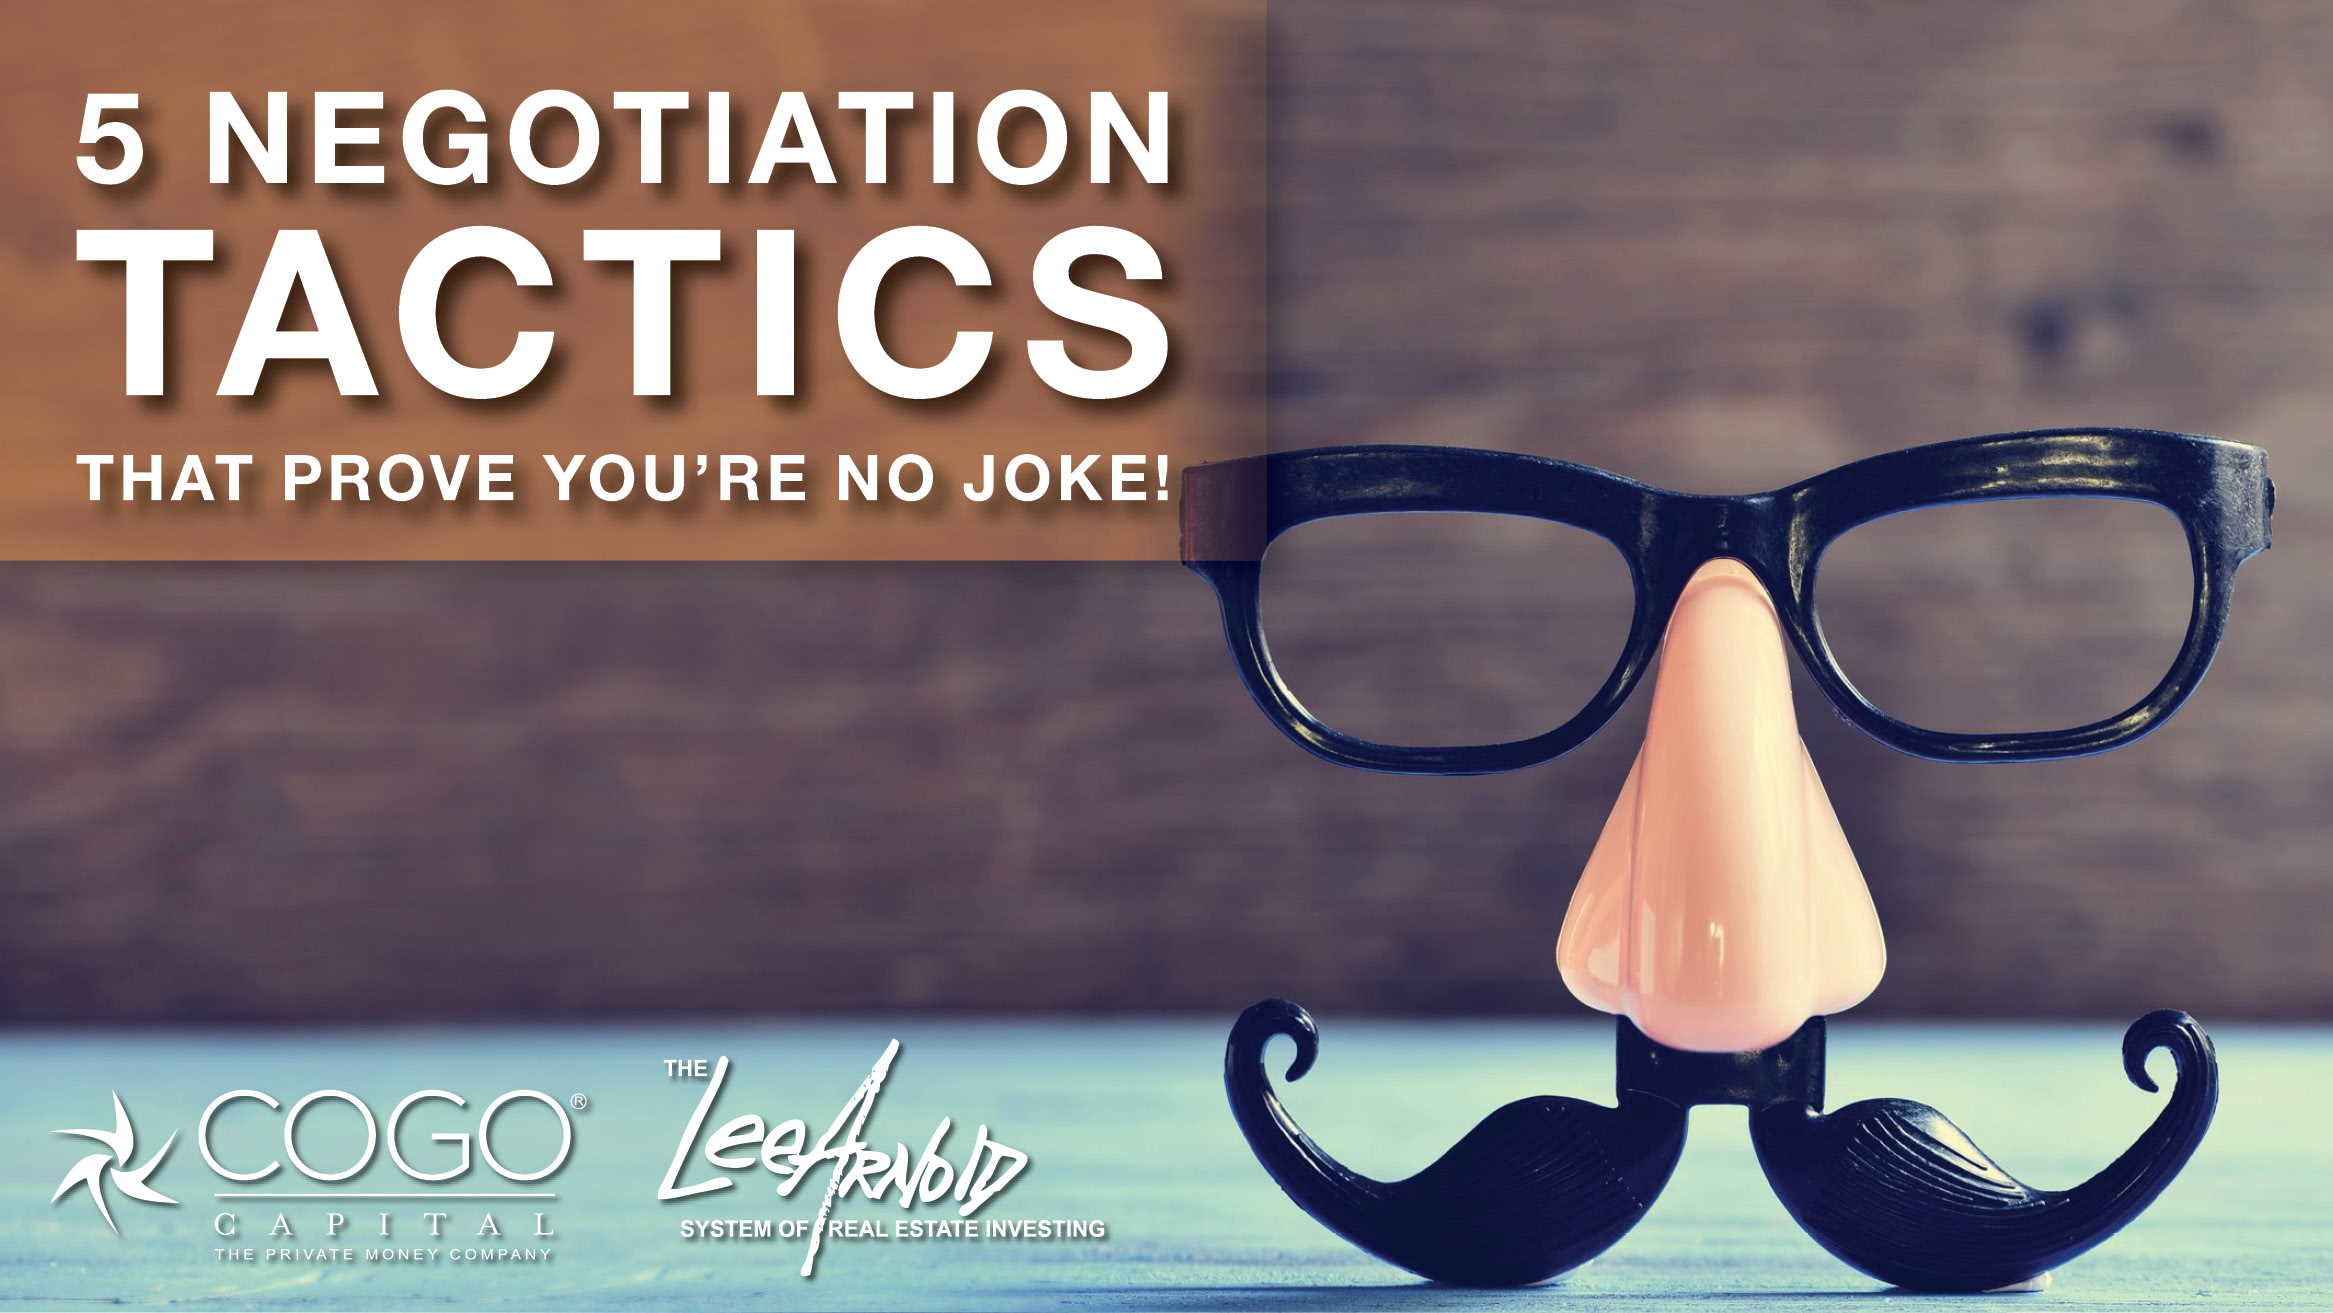 5 NEGOTIATION TACTICS THAT PROVE YOU'RE NO JOKE